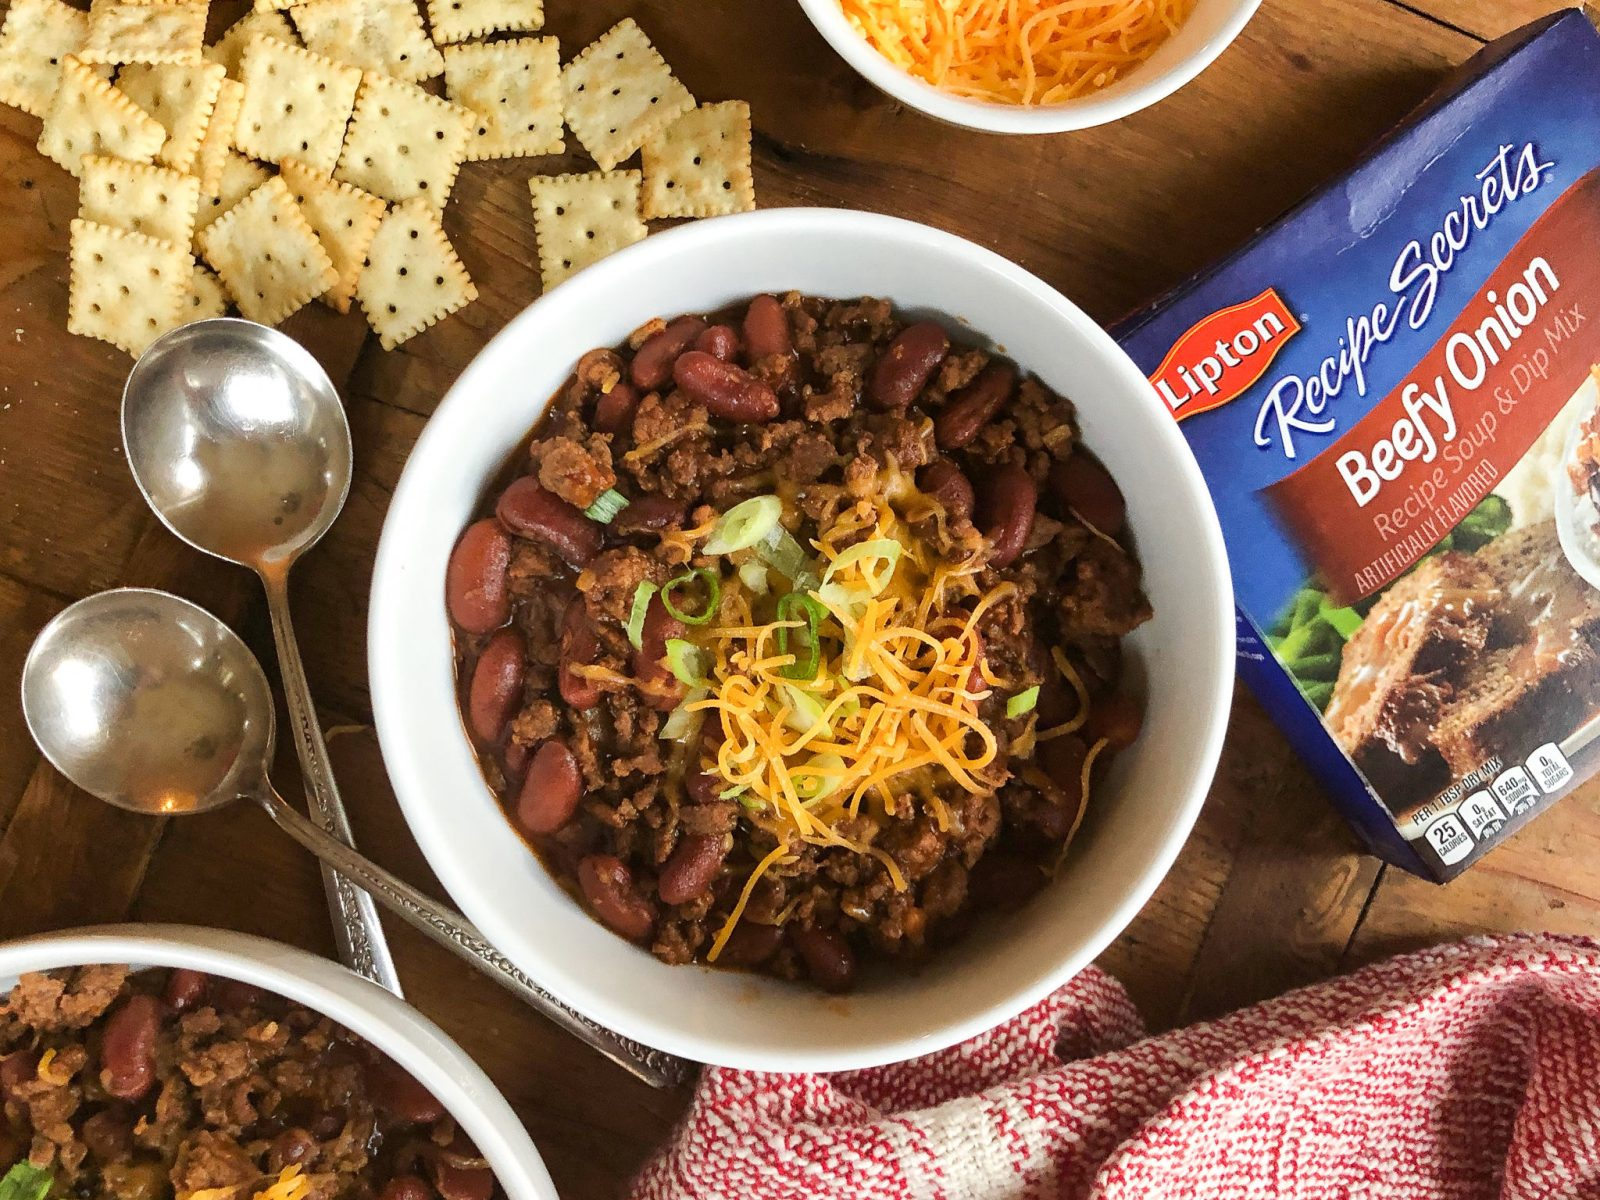 Serve Up This Fast 'n Easy Chili When You Need A Meal In A Flash + Save On Lipton Recipe Secrets At Publix on I Heart Publix 1